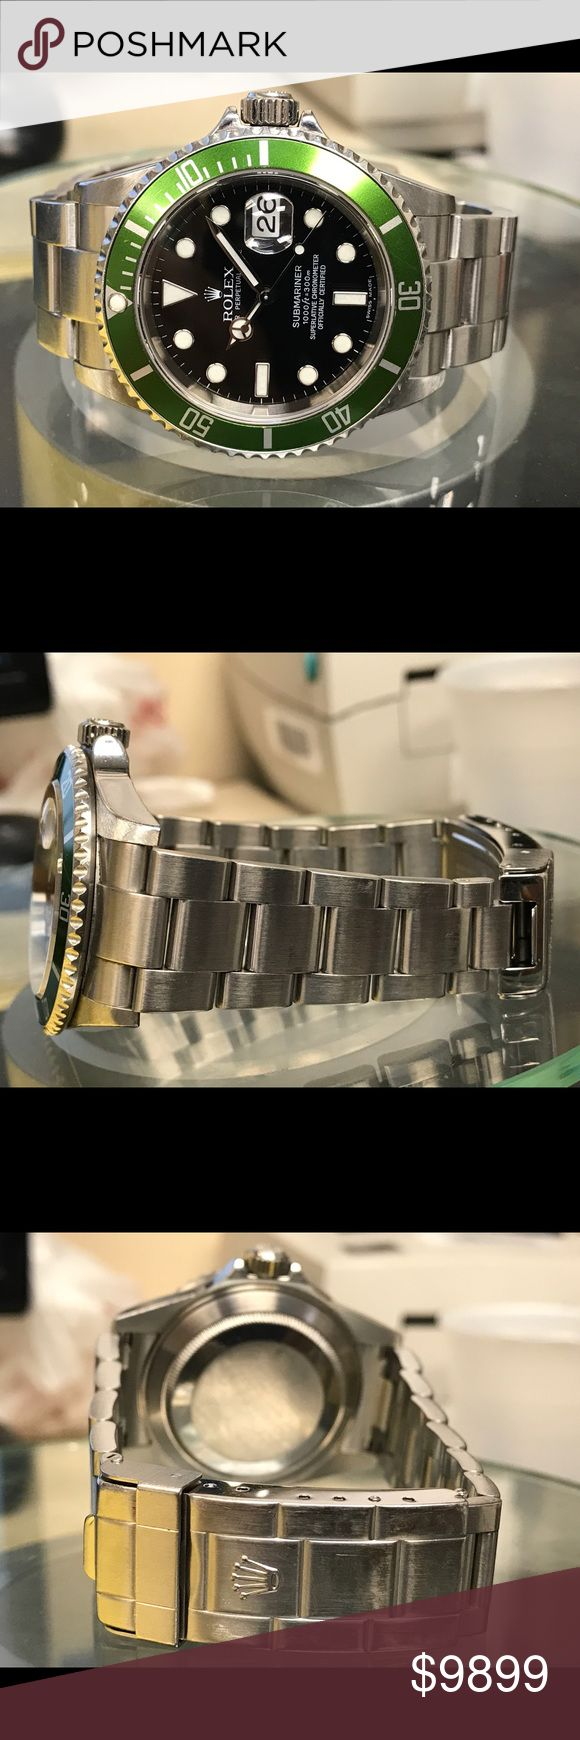 Rolex submariner anniversary steel automatic watch This is preowned near to mint  stainless steel rolex Submariner anniversary automatic men;s watch. Date display, rotational bezel.  Item id- 17297 Rolex Accessories Watches